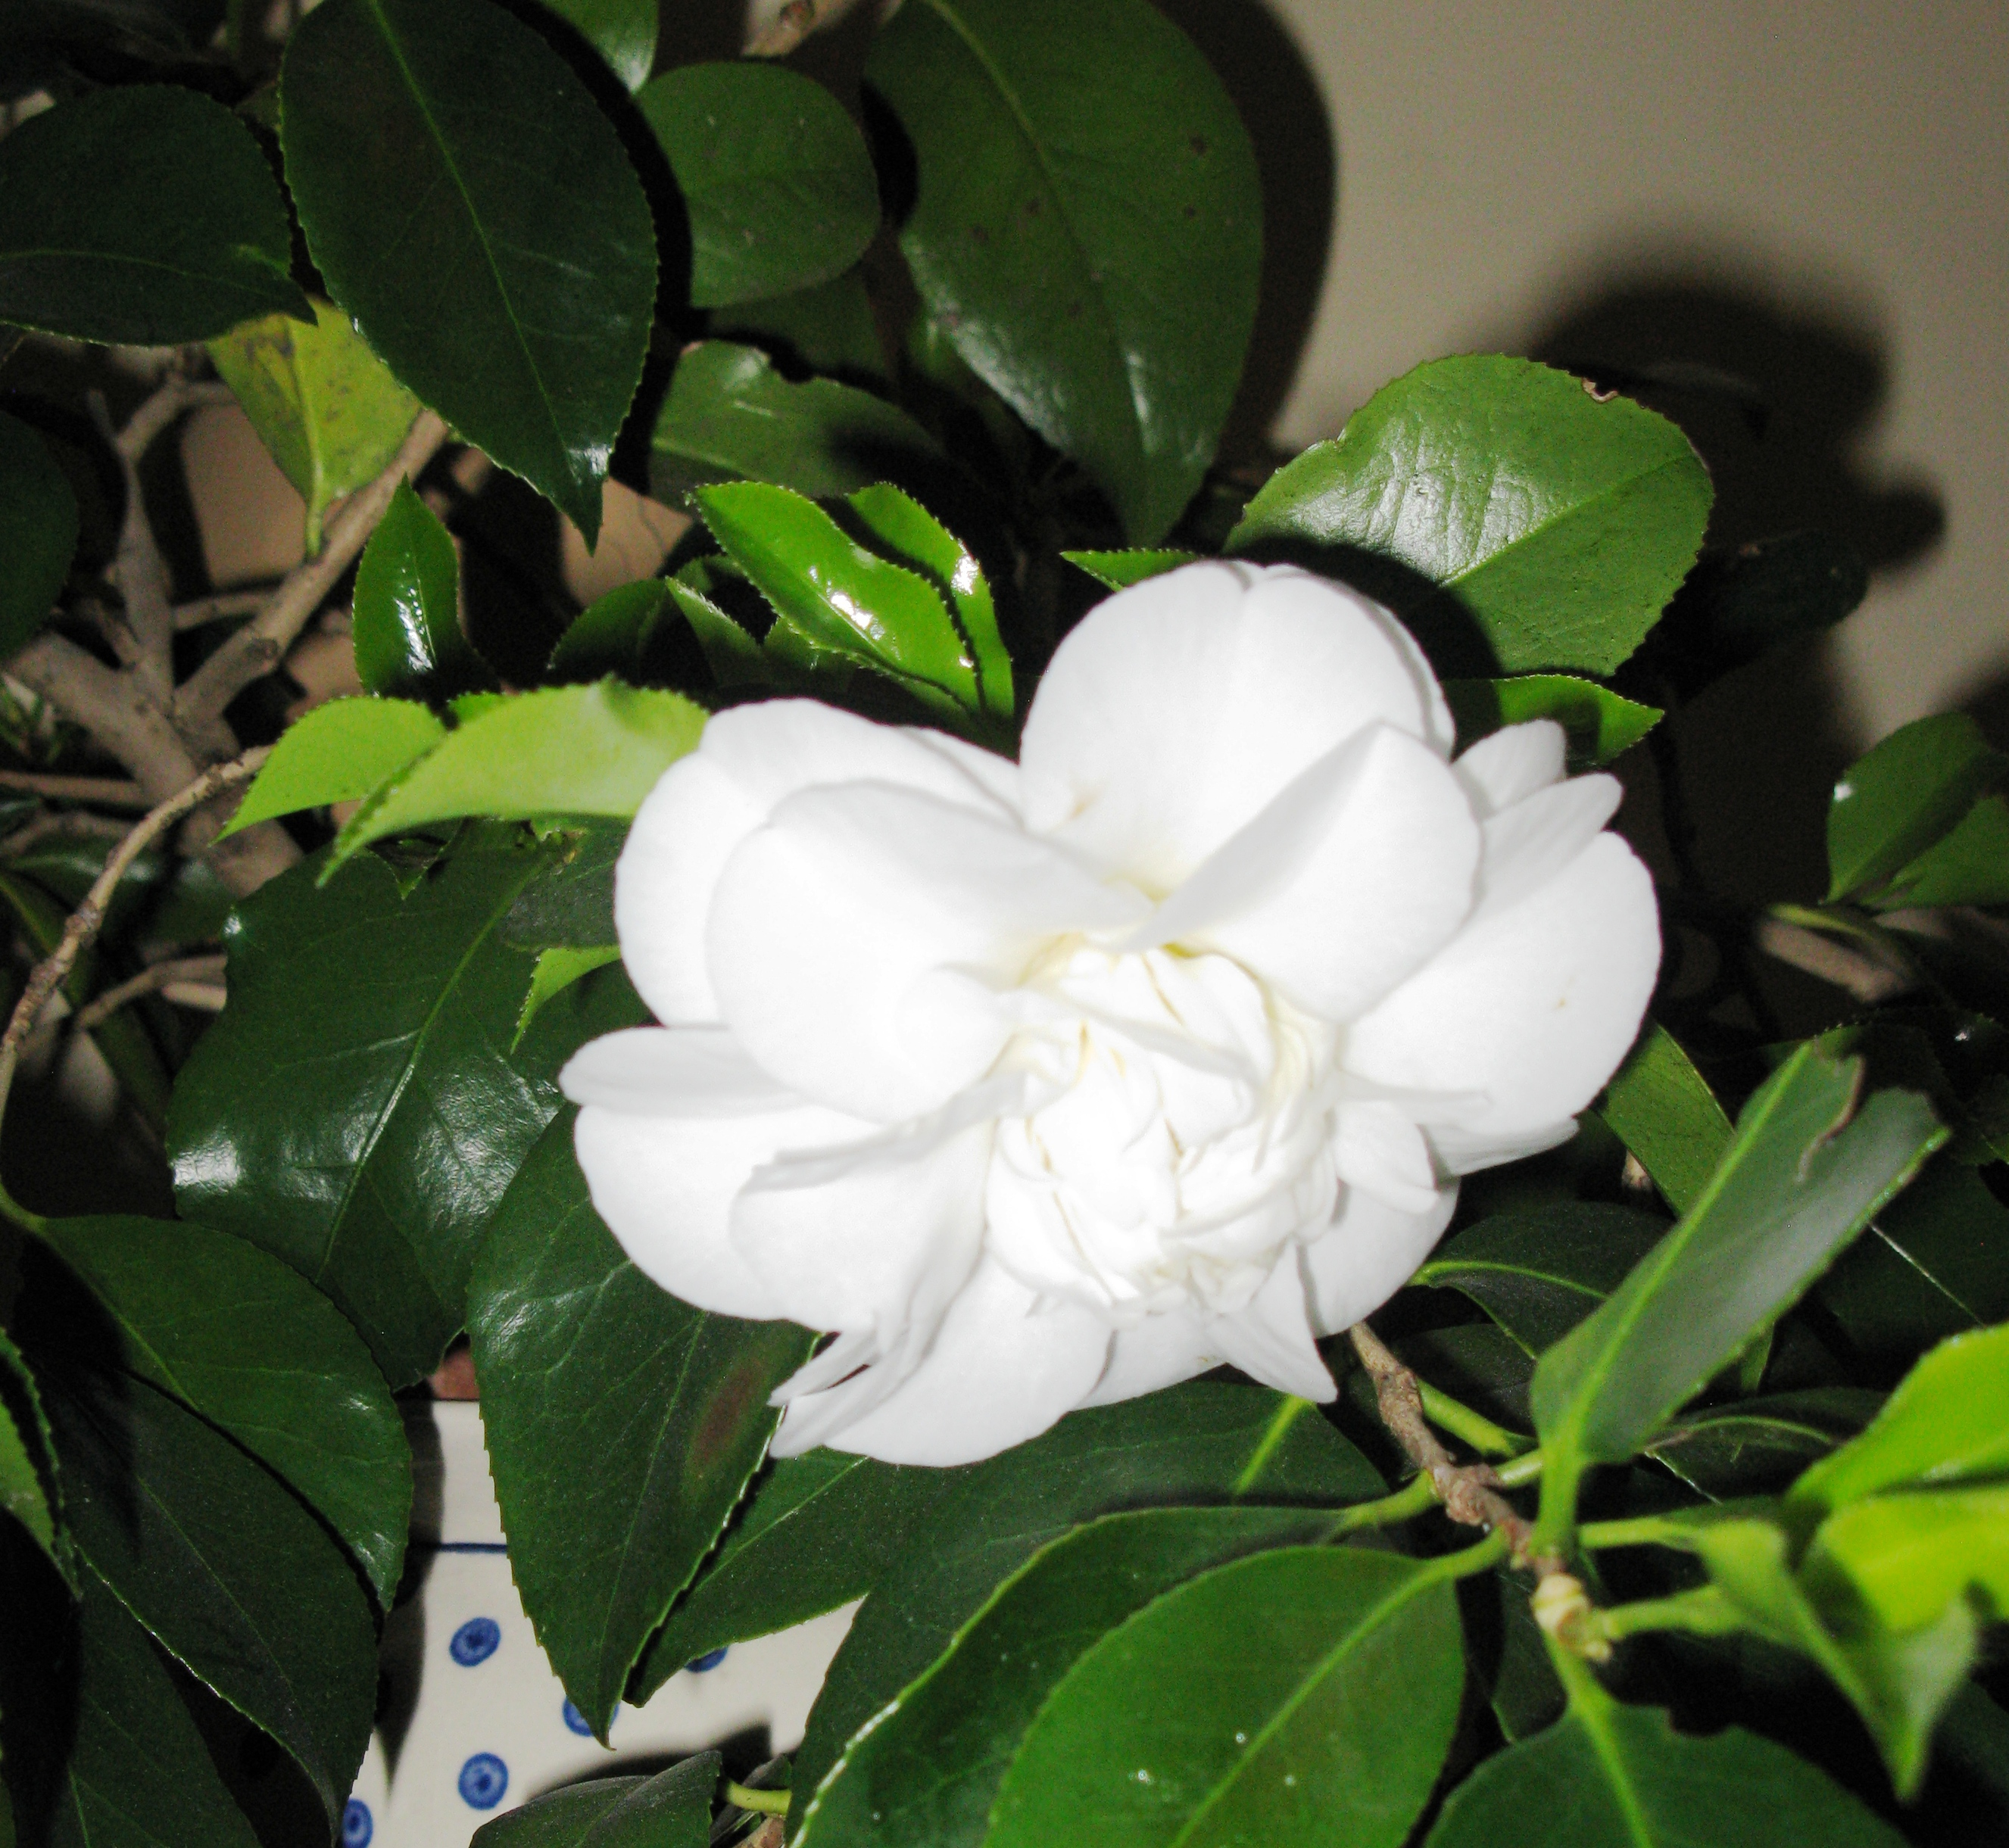 camellia still in flower photo l alexander house plants with white flowers - White Flowering House Plants